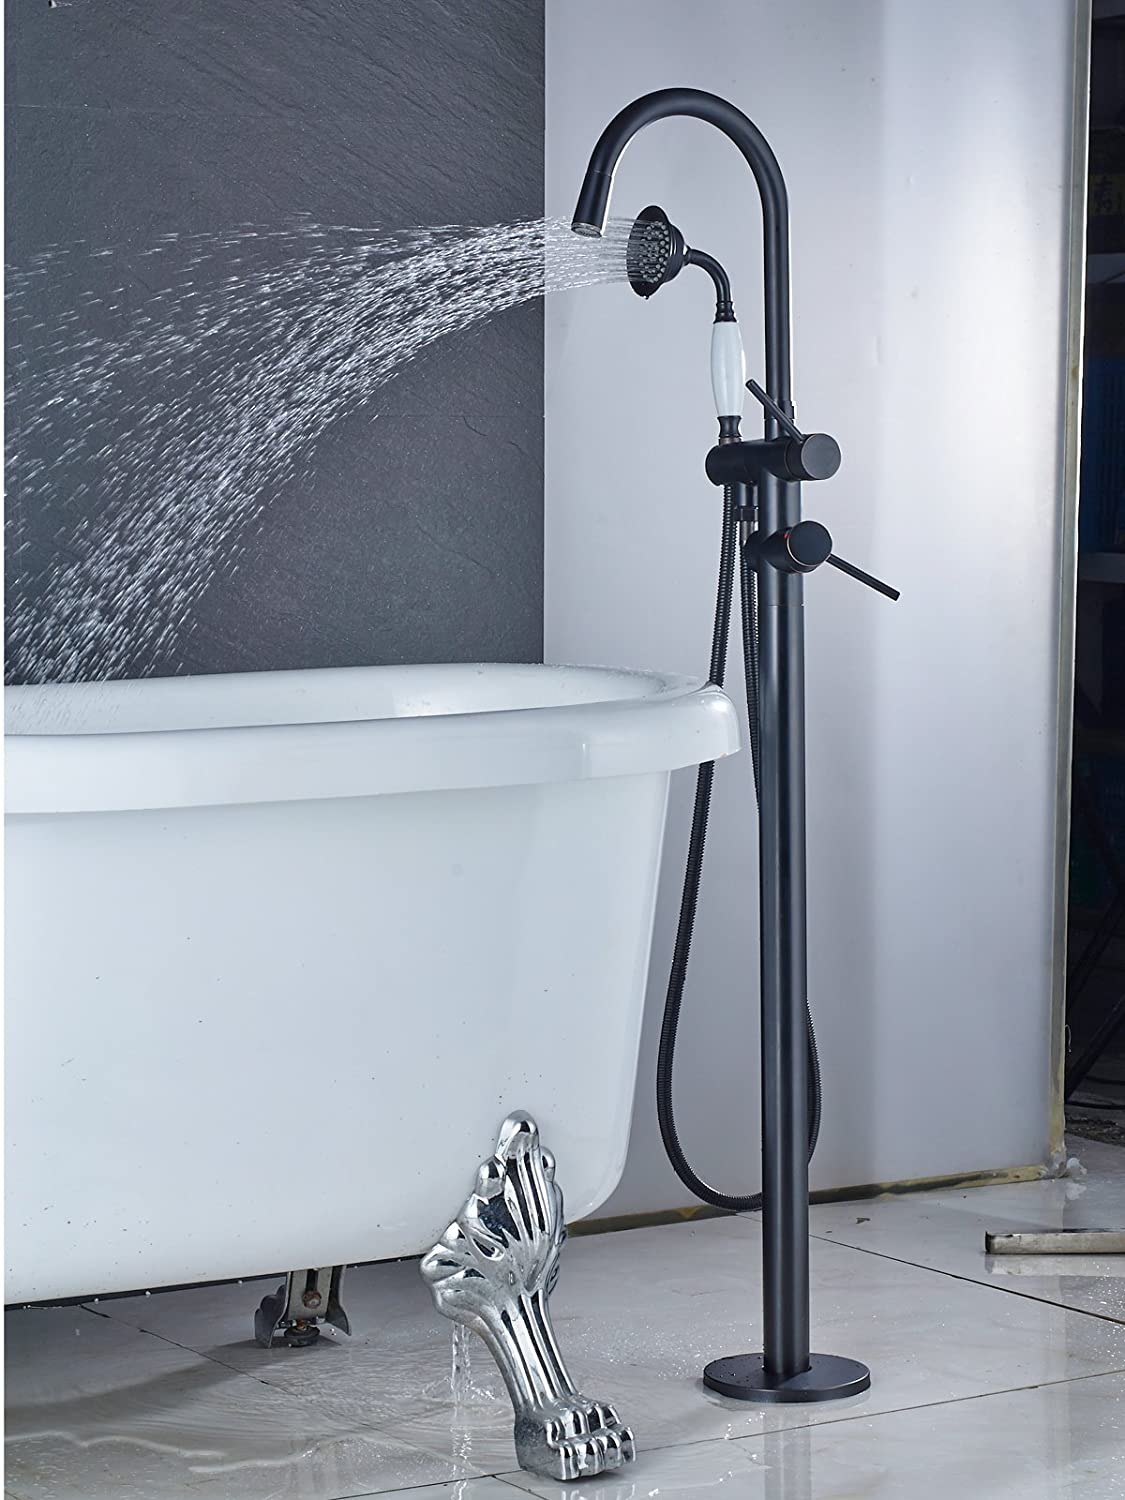 Zovajonia Oil Rubbed Bronze LED Light Bathroom Floor Mounted Tub ...